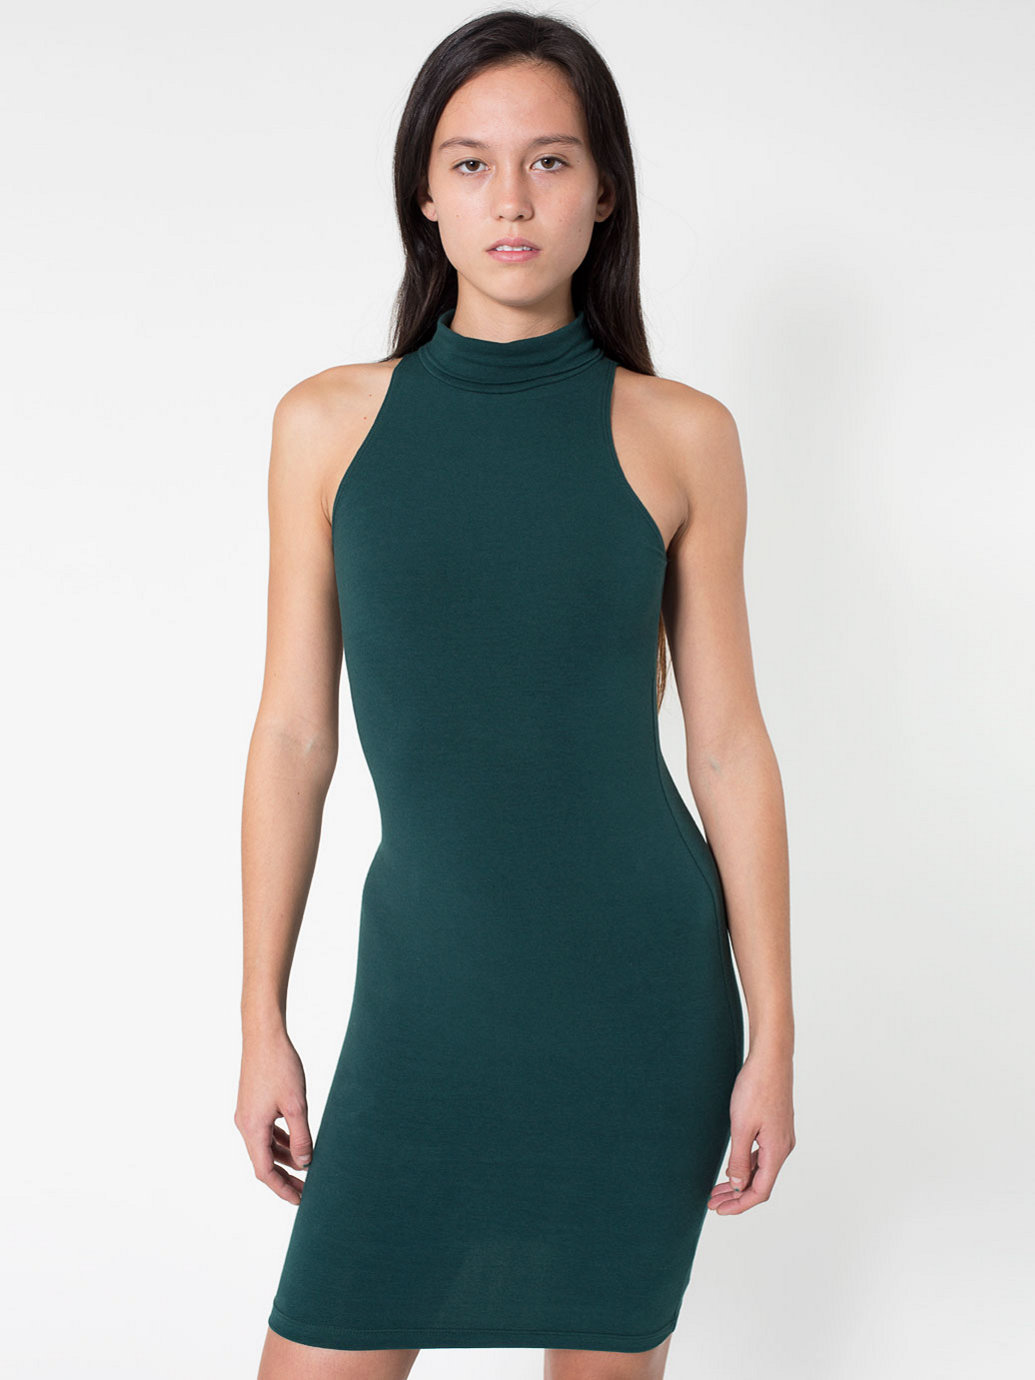 Cotton Spandex Jersey Sleeveless Turtleneck Dress | American Apparel